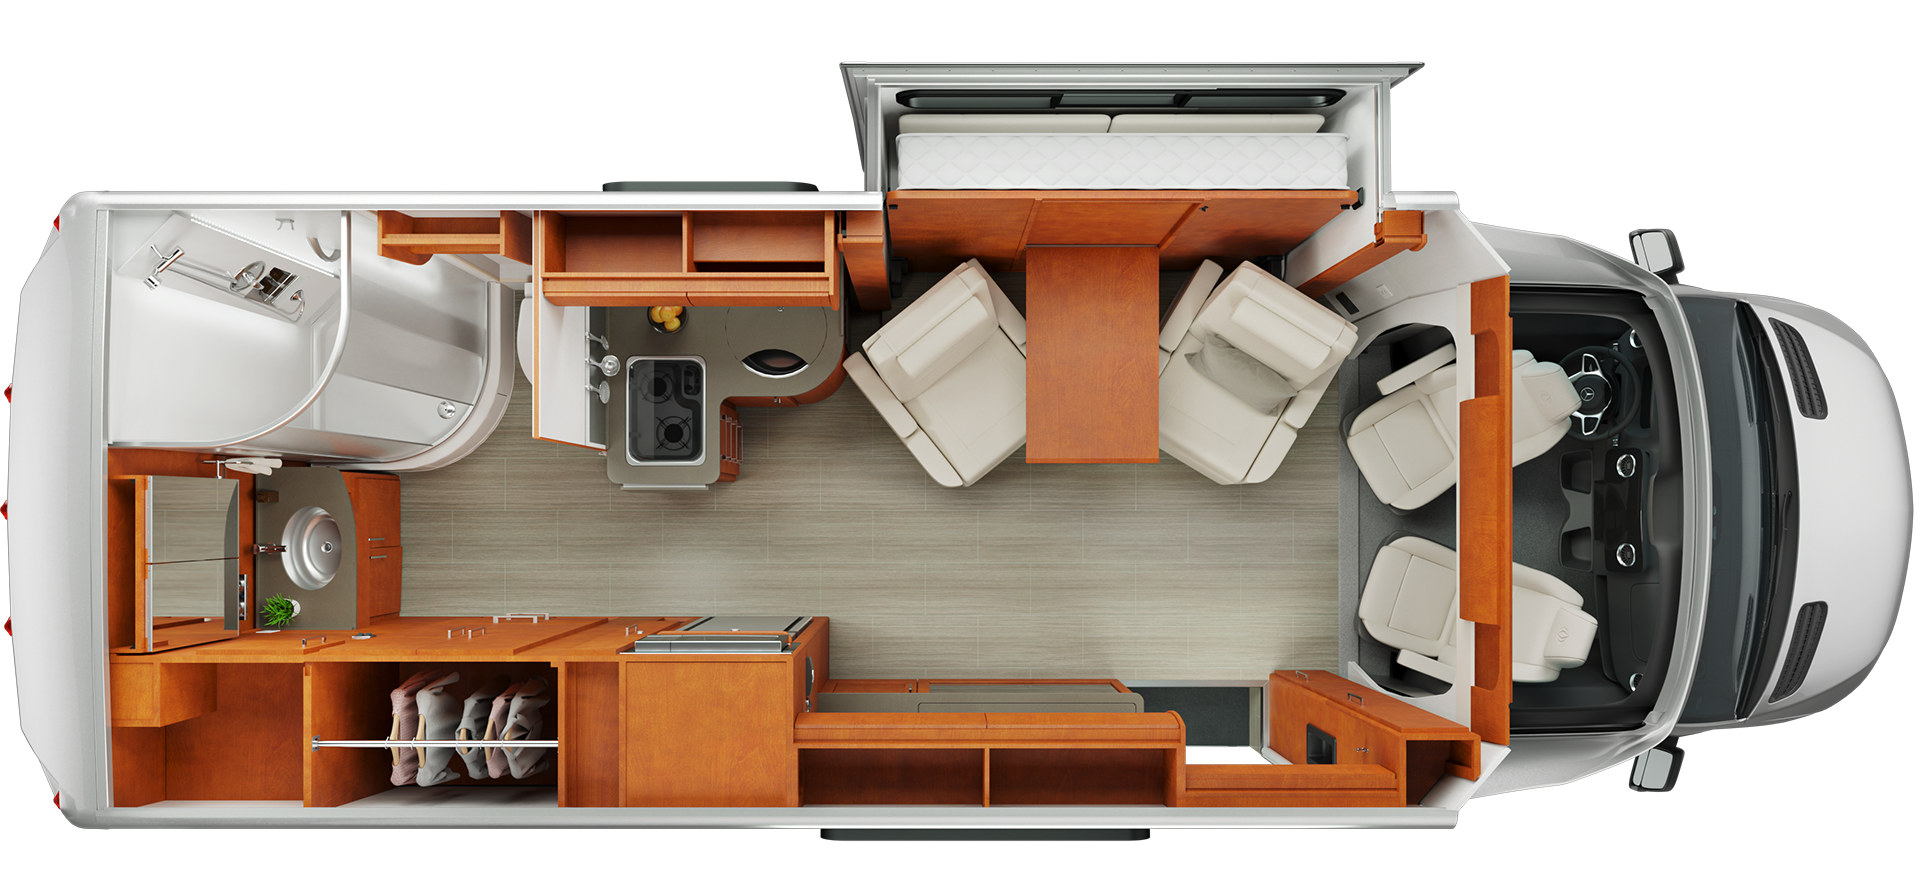 Unity - Floorplans - Leisure Travel Vans